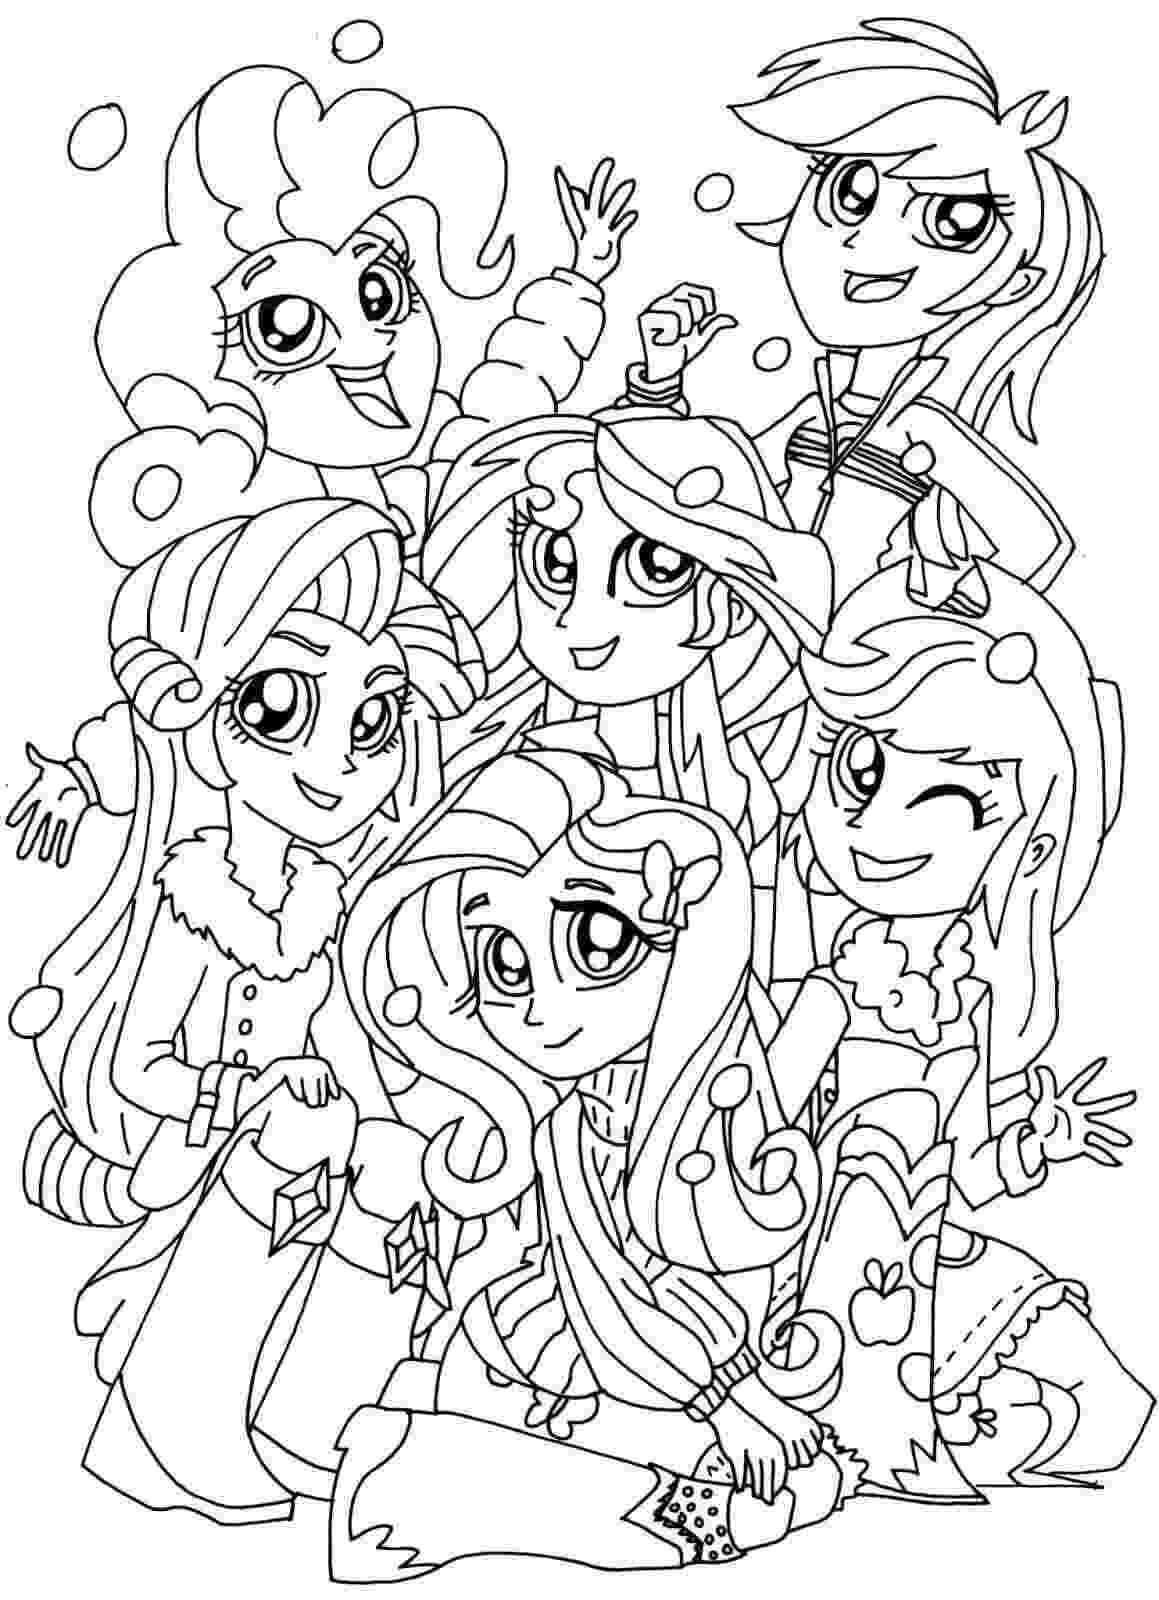 mlp coloring book games my little pony coloring pages print and colorcom mlp book games coloring